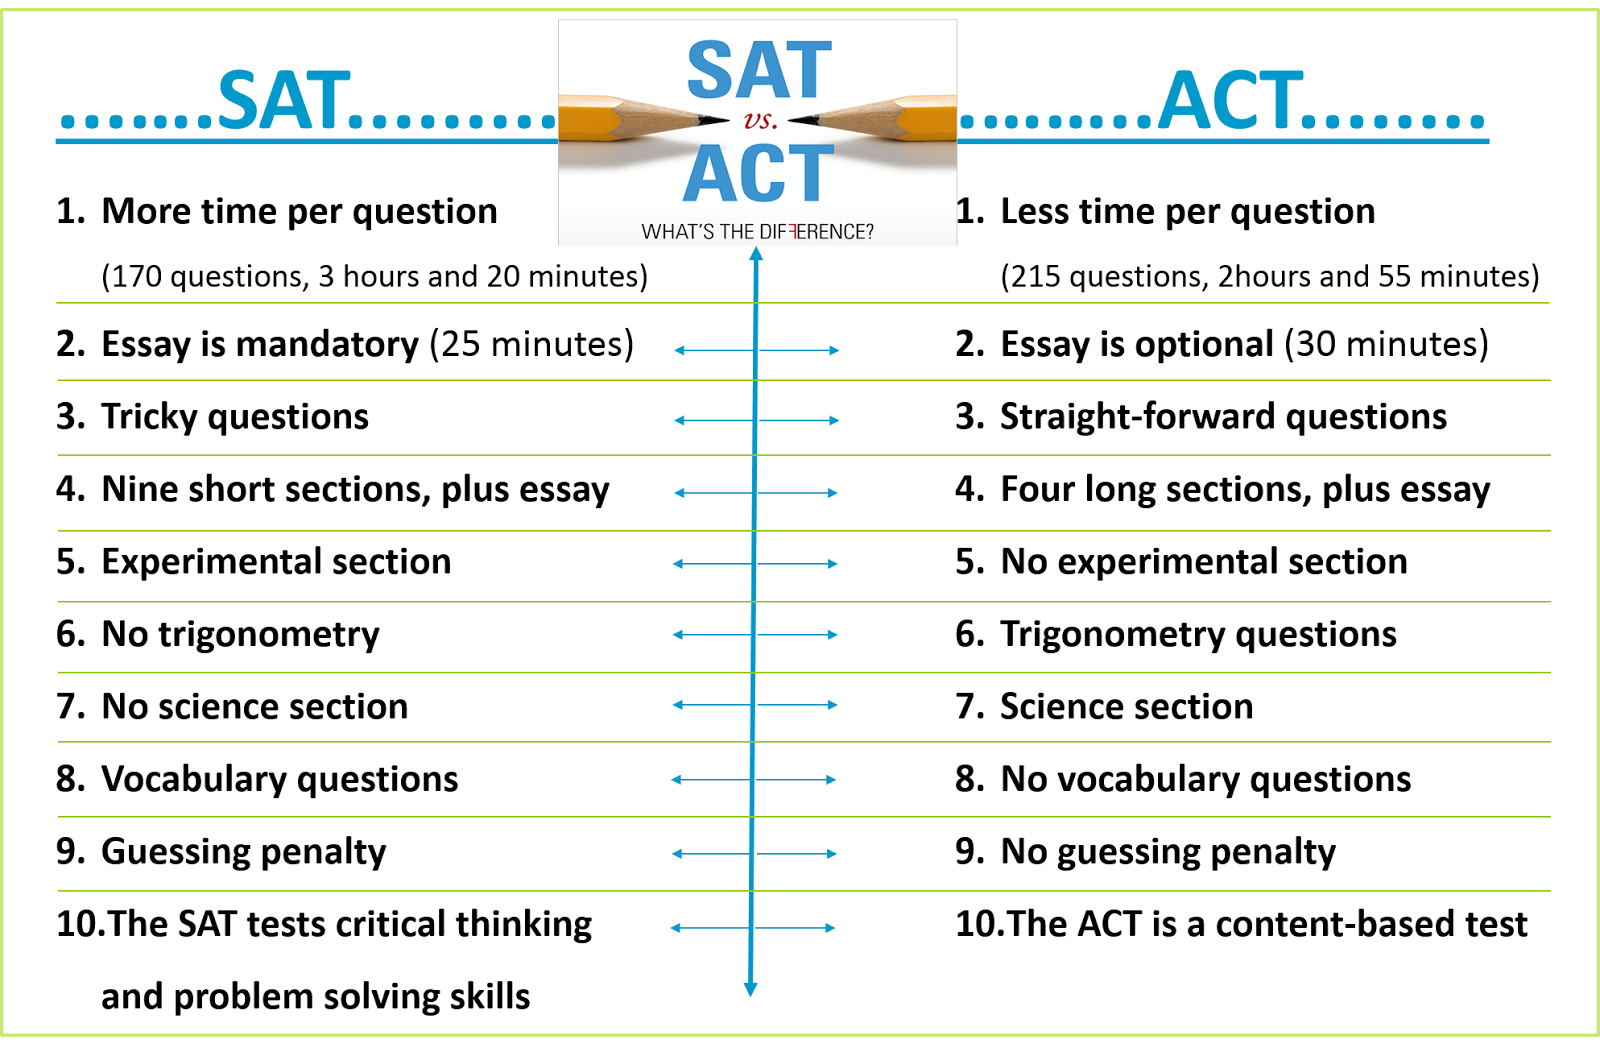 005 Essay Example Act Time Sat Vs  Unique Limit What Does With End 2017Full